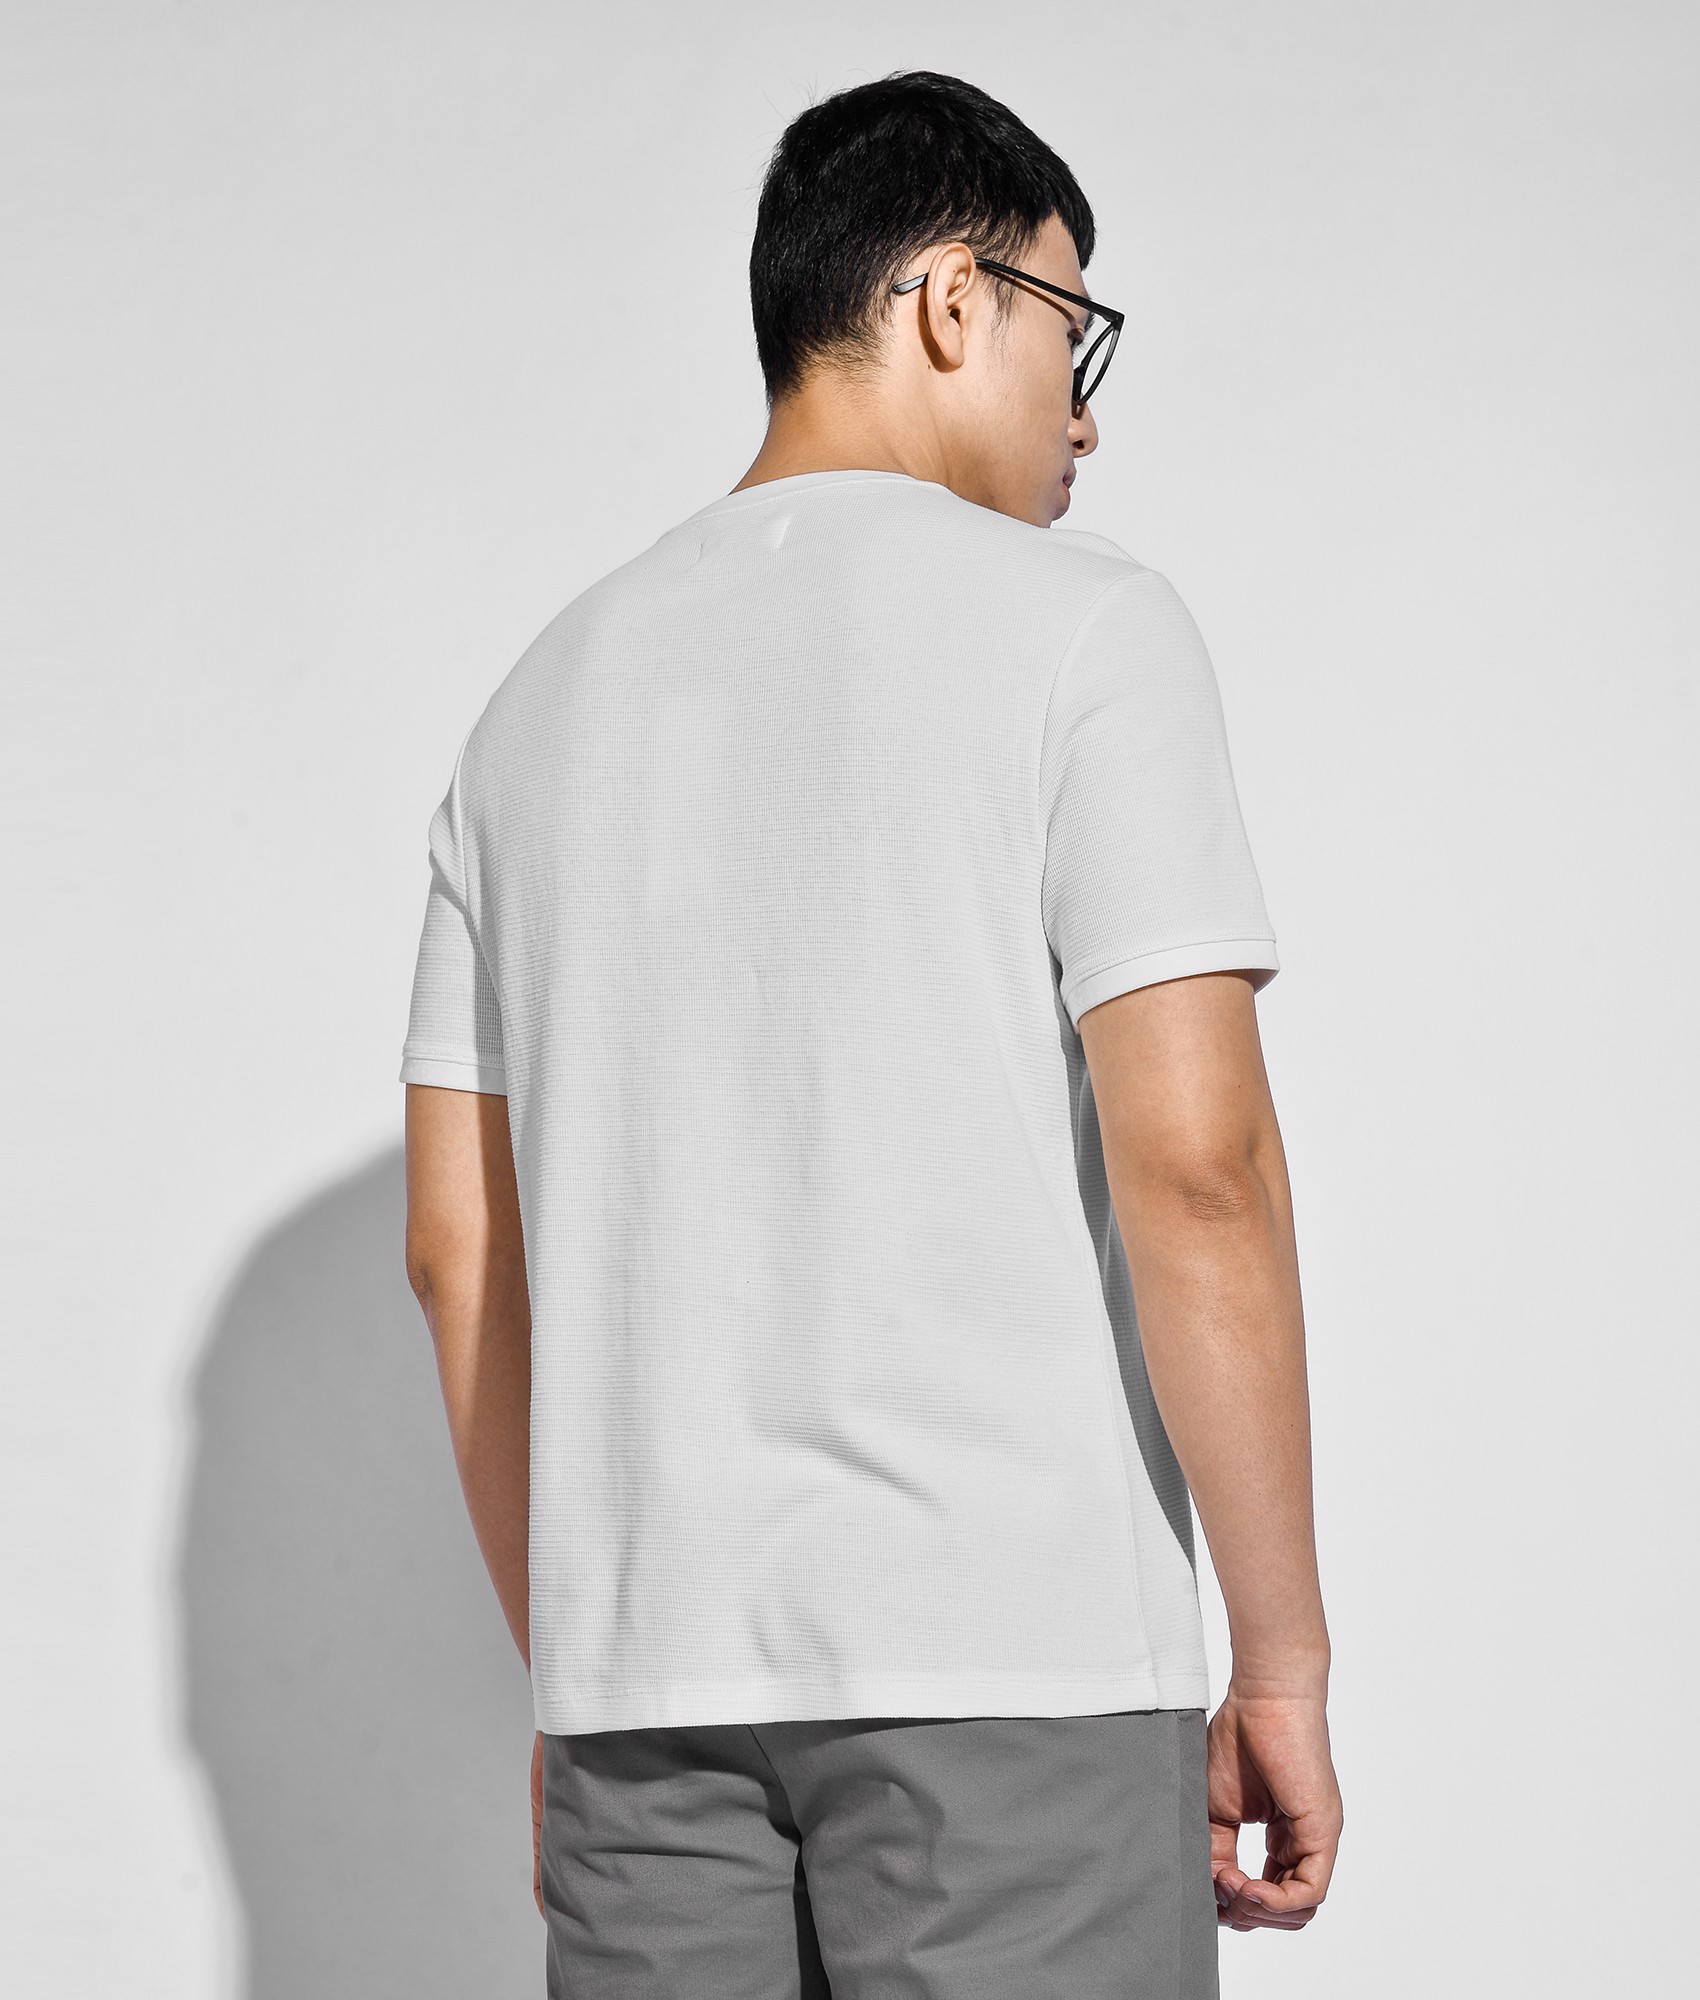 Áo thun cotton form fitted - 10S20TSH045